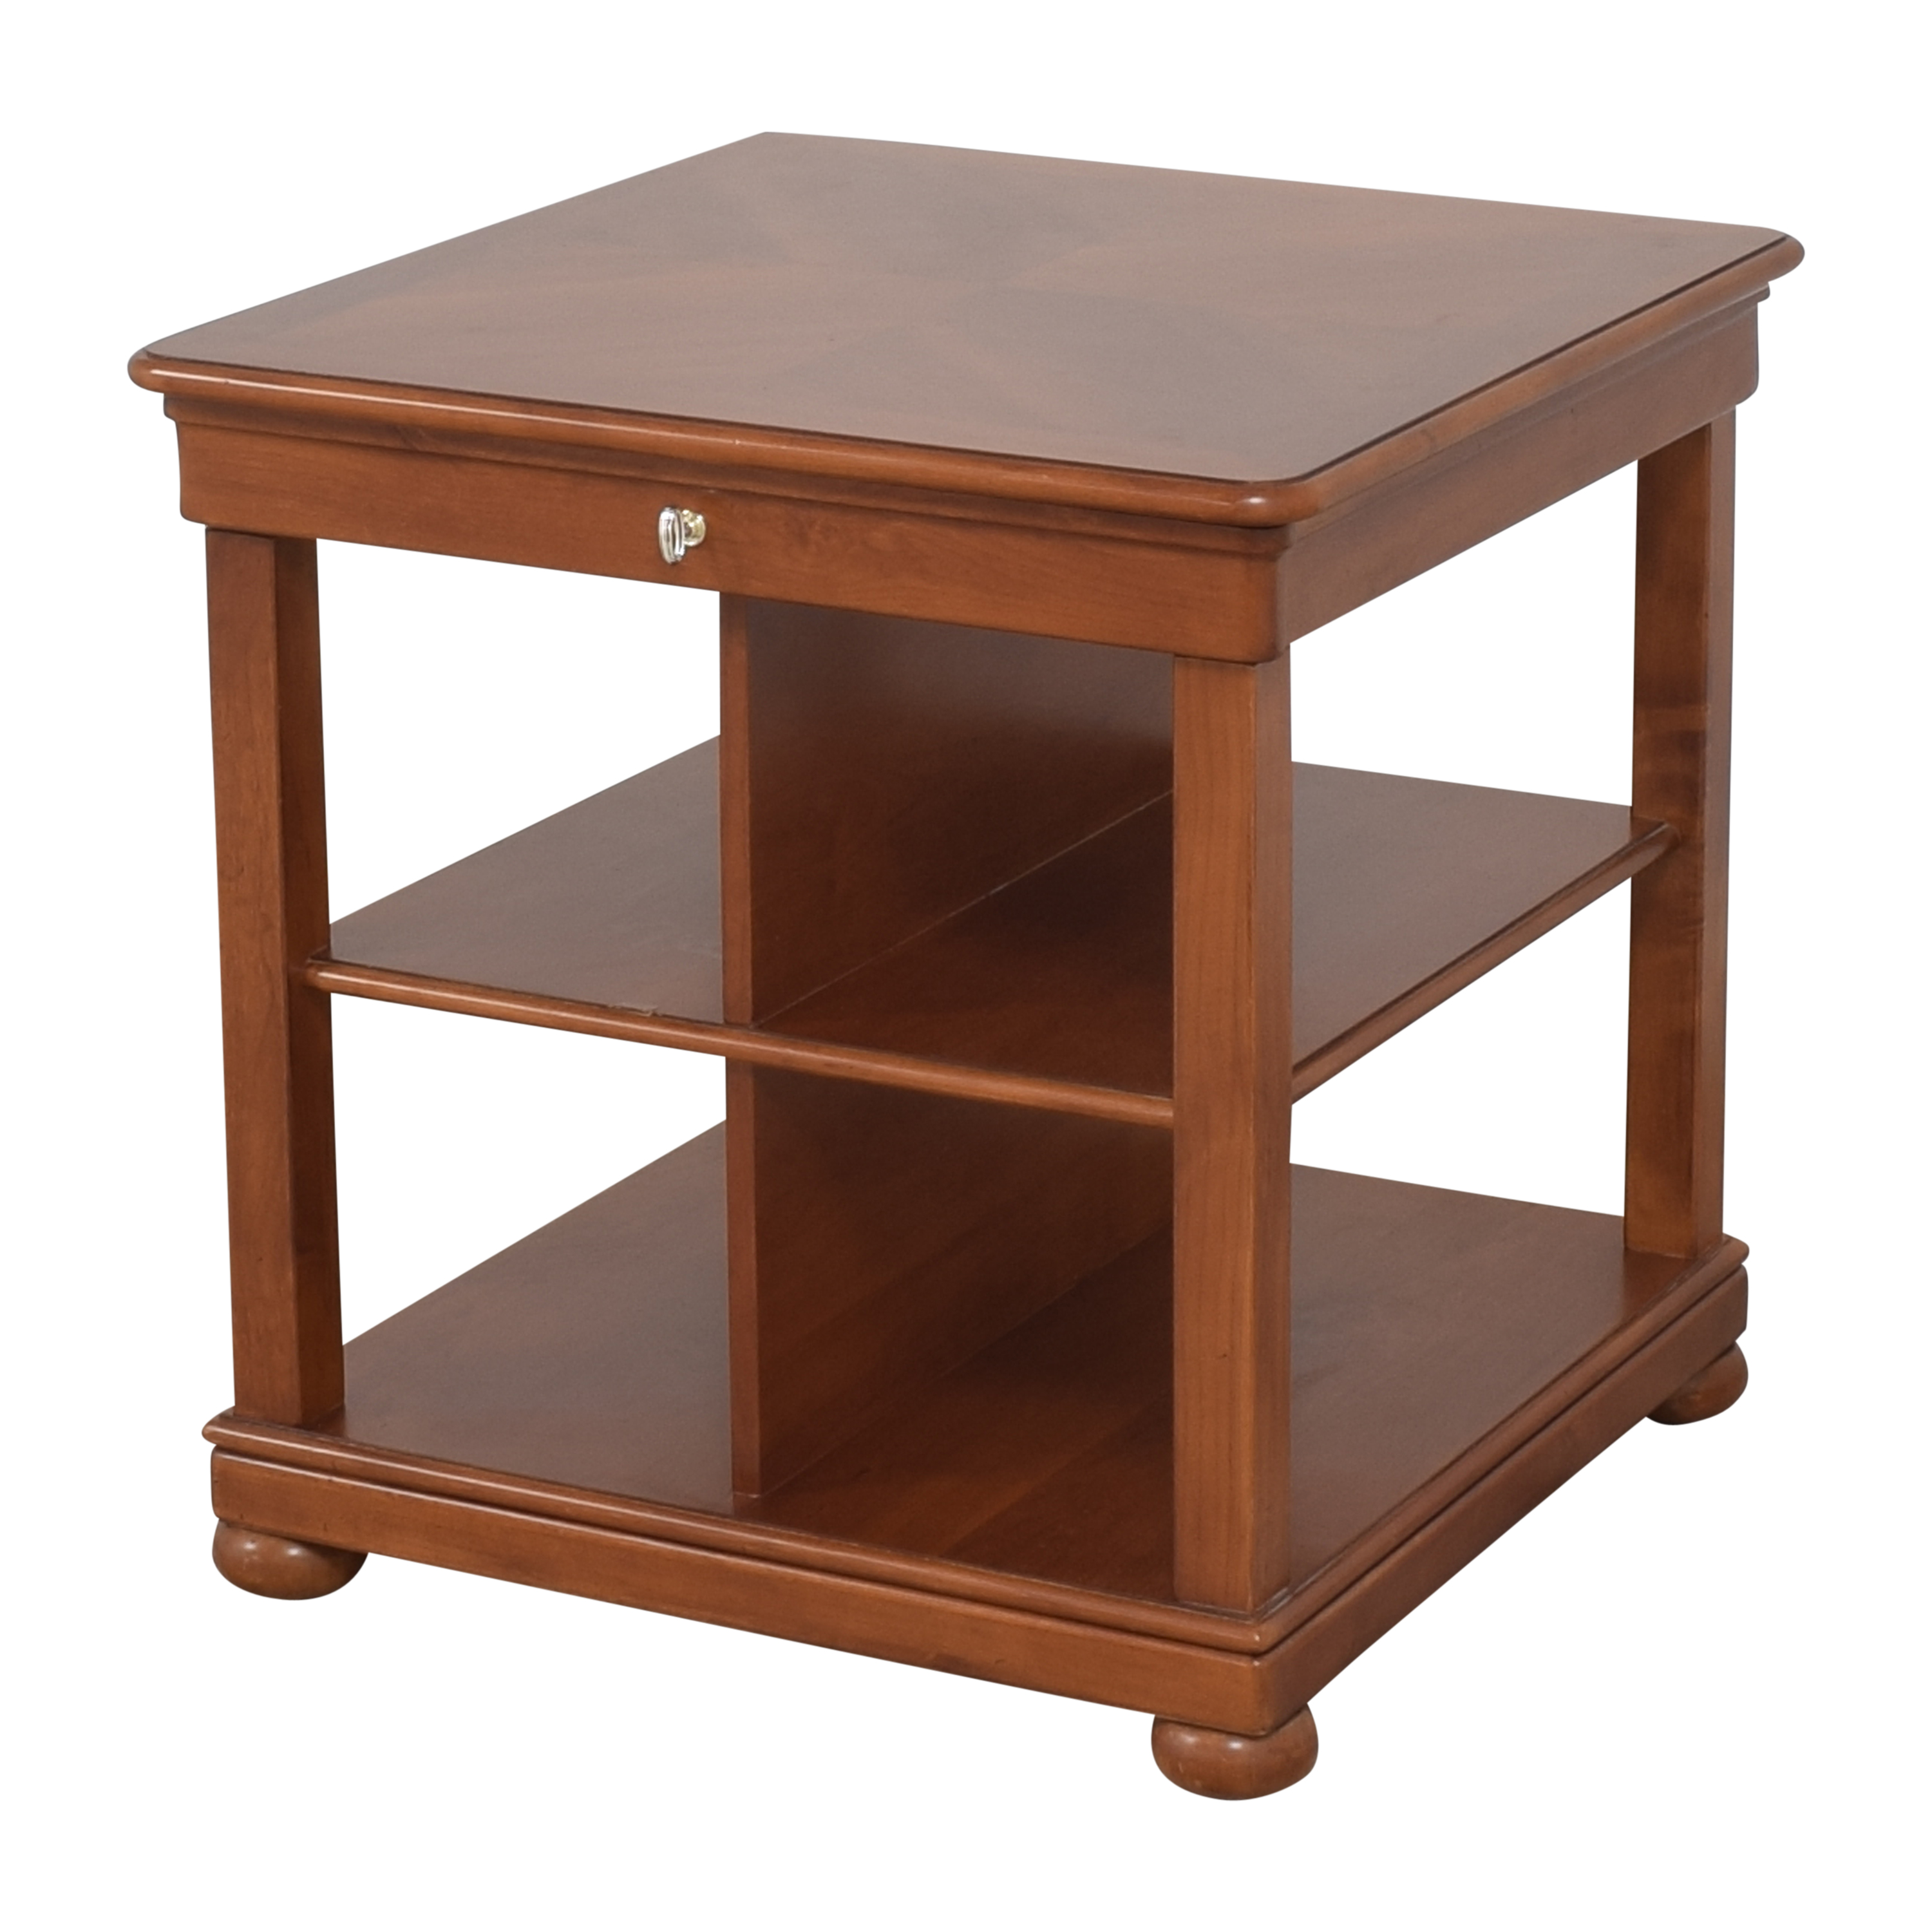 Stanley Furniture Stanley Furniture Bookcase End Table for sale